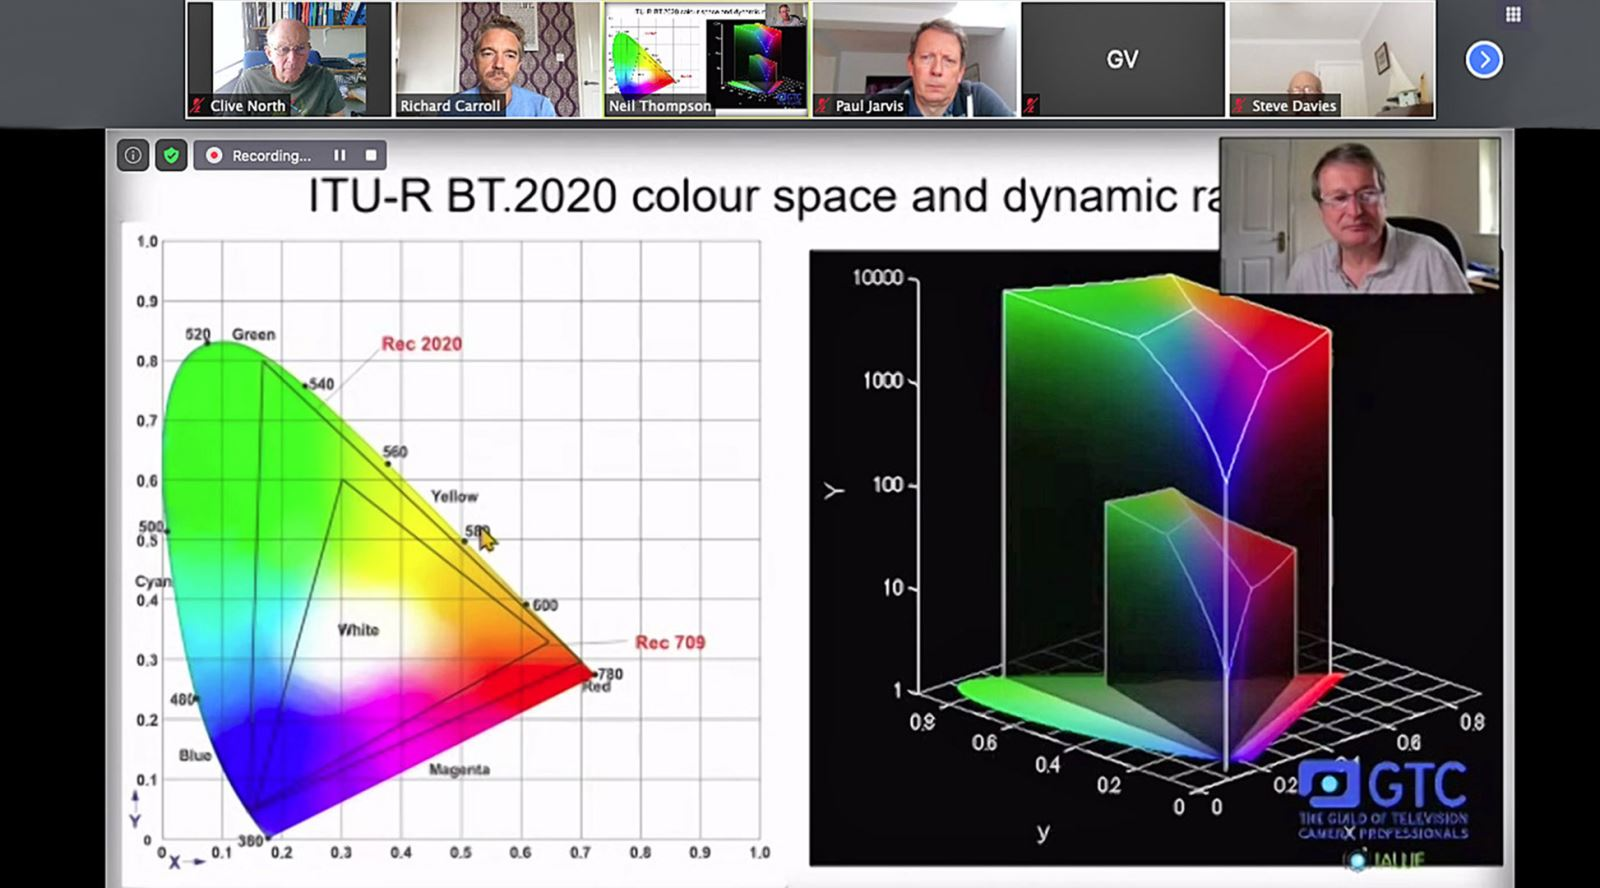 Thanks to Neil Thompson and Richard Carroll for our open GTC eWorkshop – HDR in Live Production. Recording now available